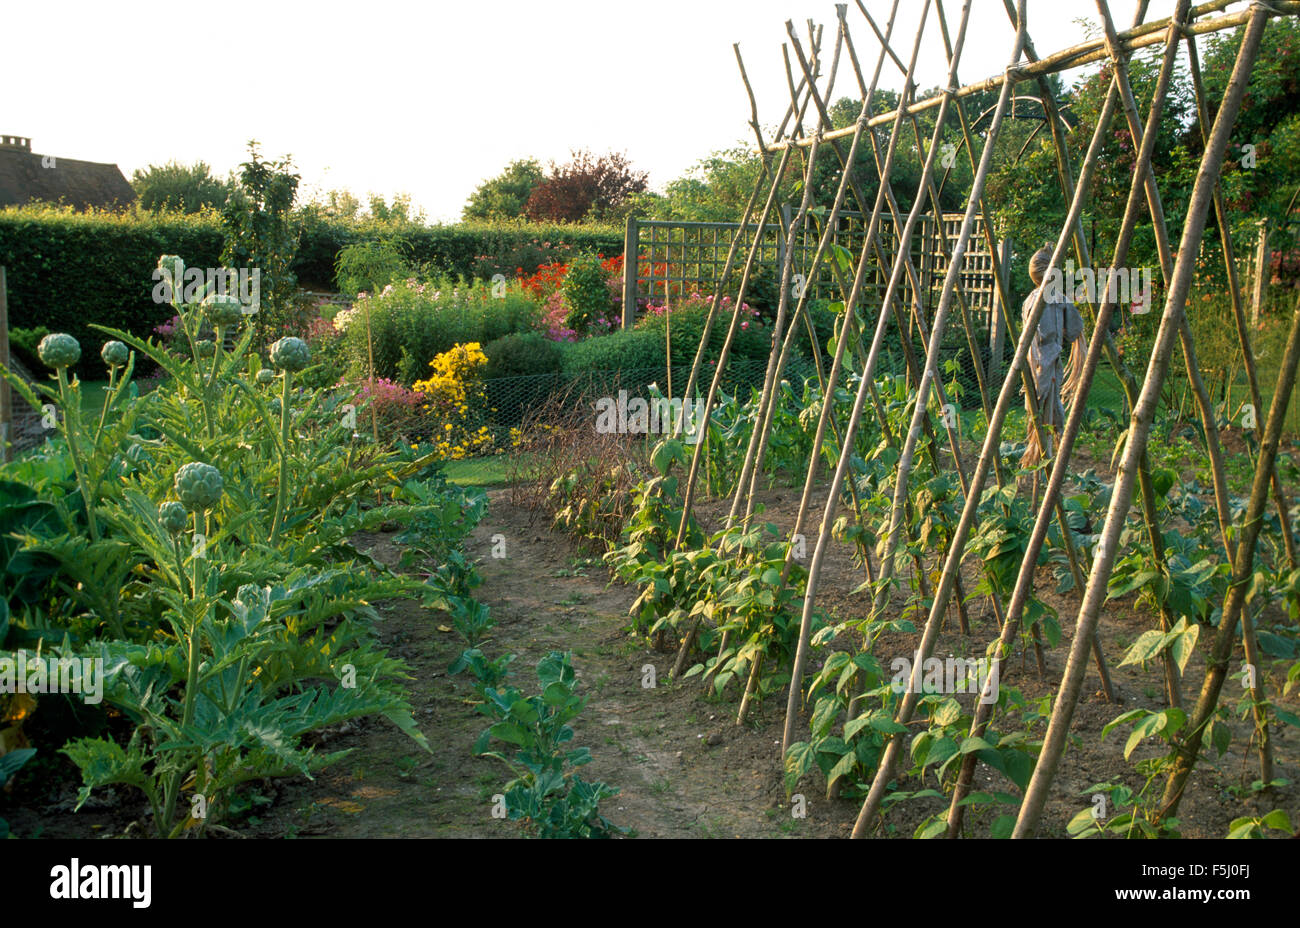 Country vegetable gardens - Globe Artichokes And A Row Of Bean Sticks With Runner Beans In Large Country Vegetable Garden